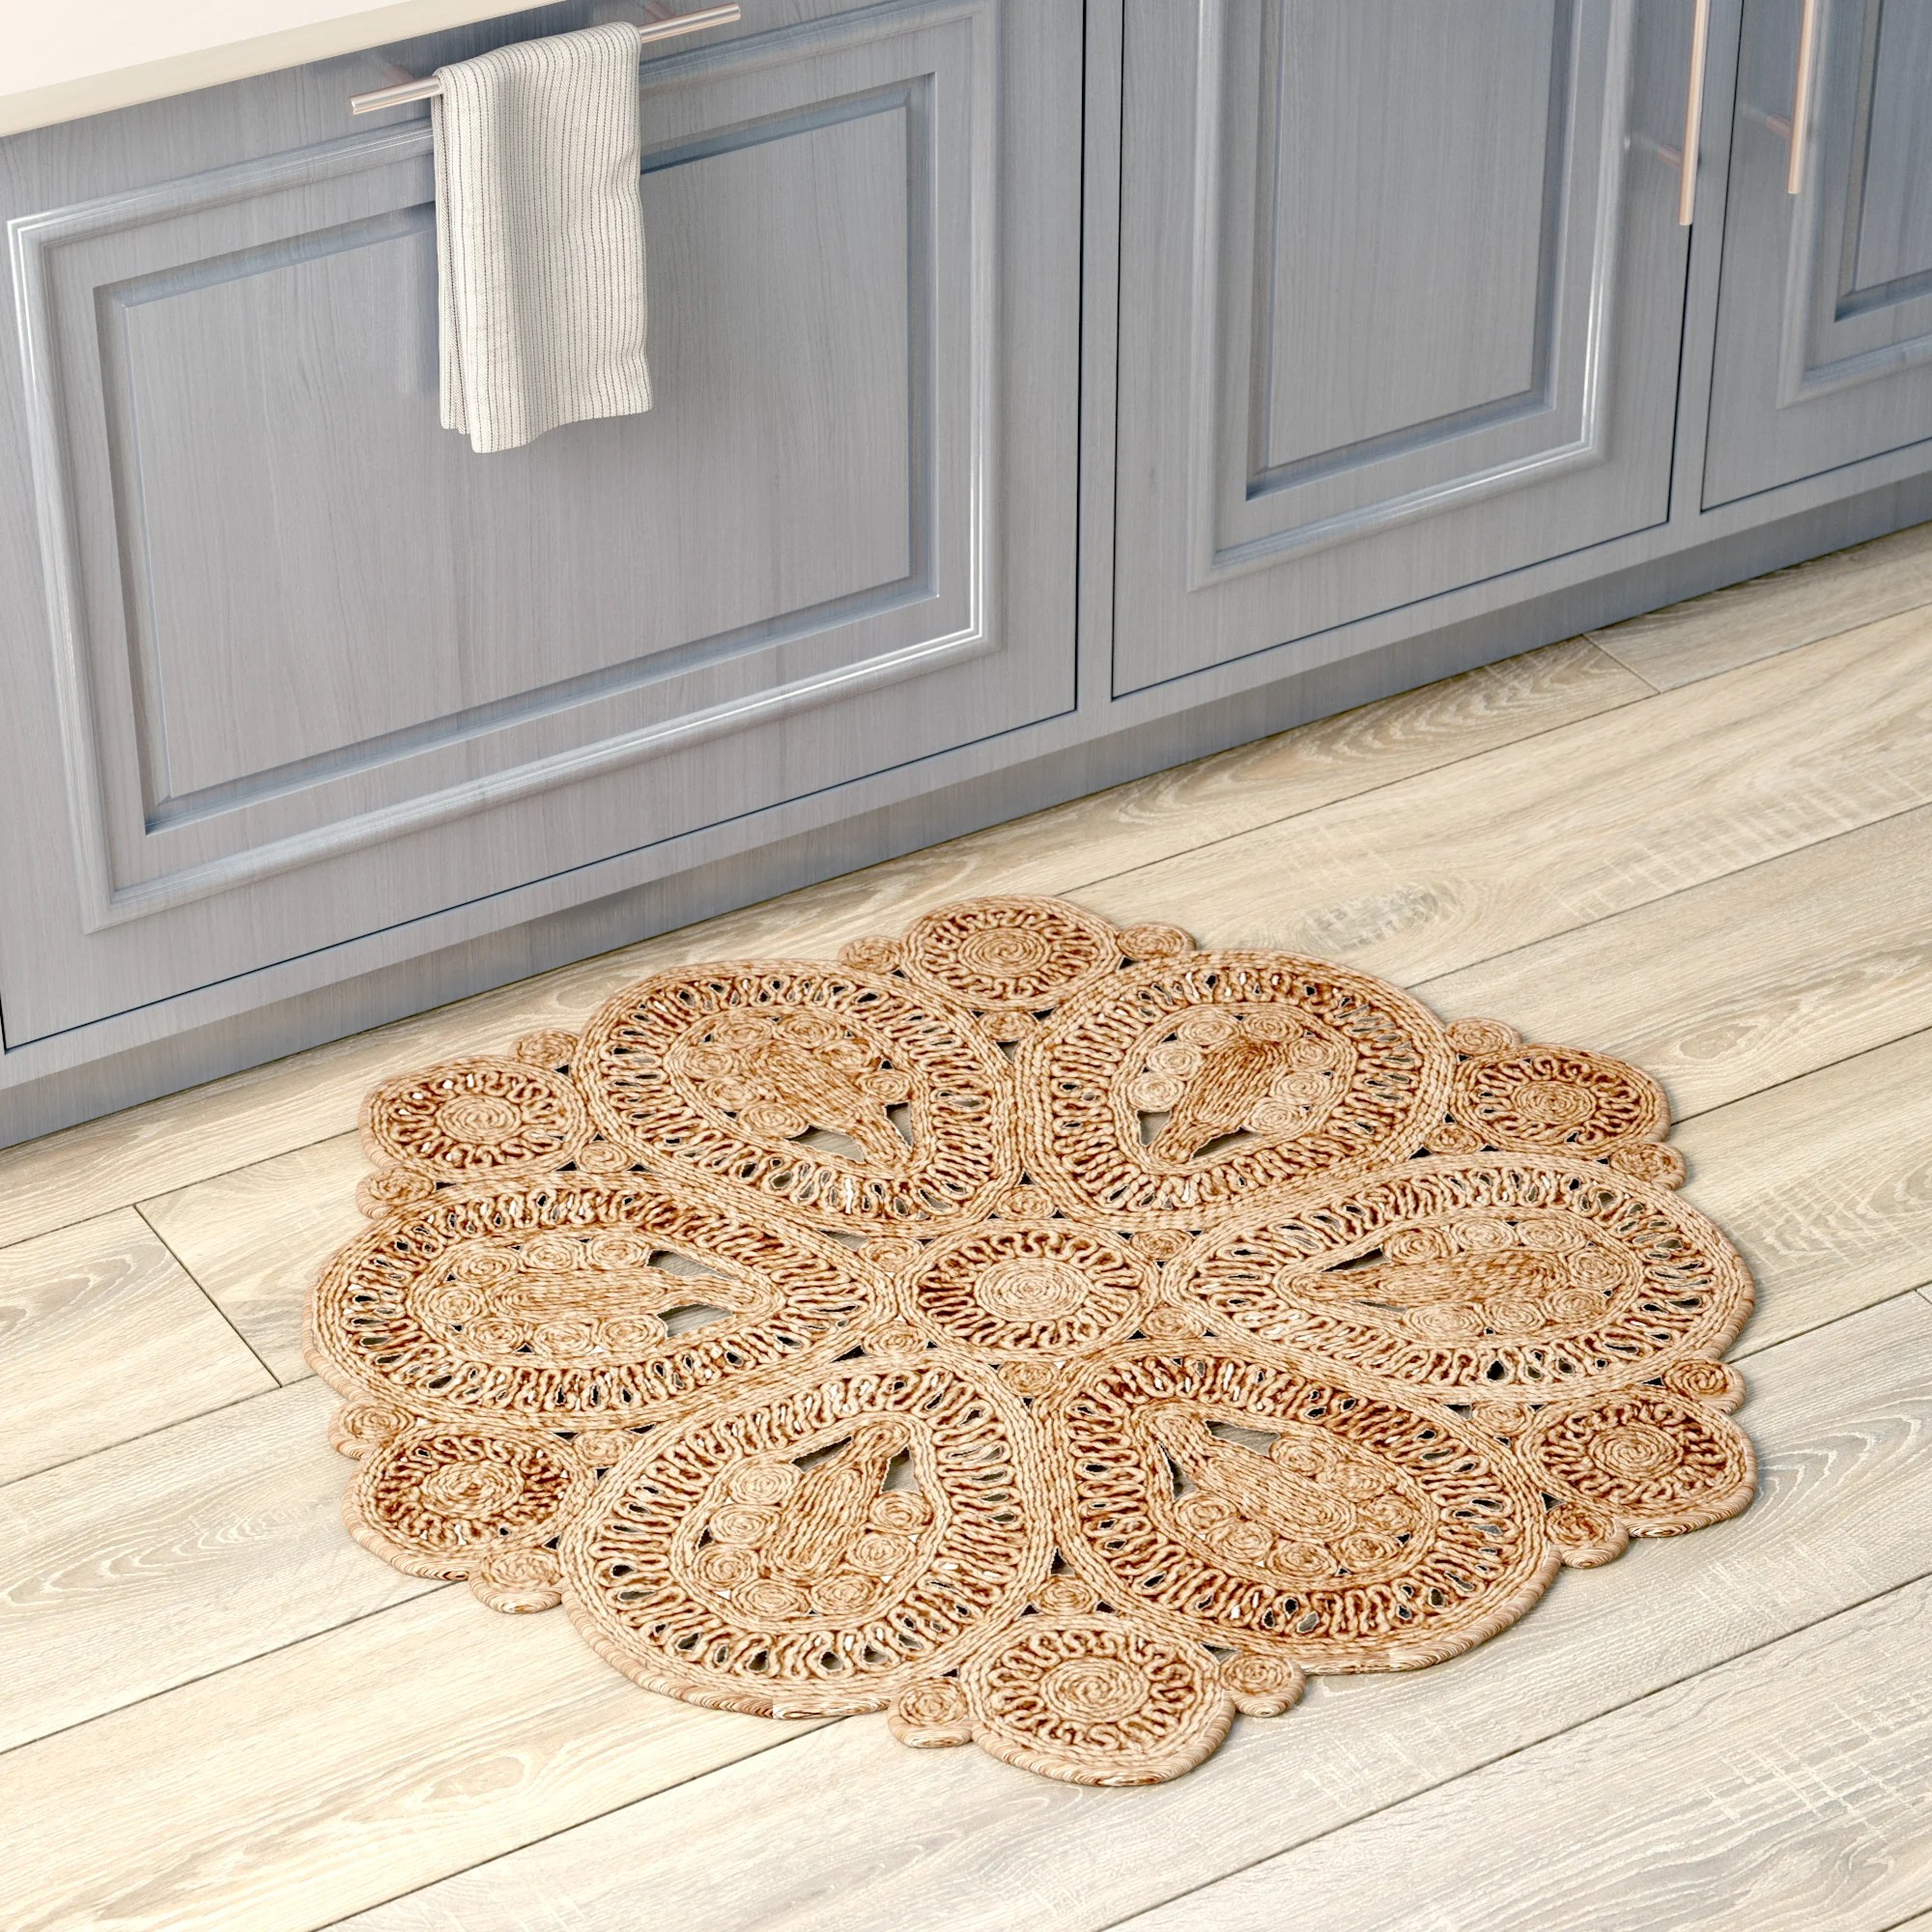 Cheery Amberboi Fiber Area Rug Reviews Birch Lane Area Rugs Near Me Color Area Rugs houzz-02 Natural Area Rugs